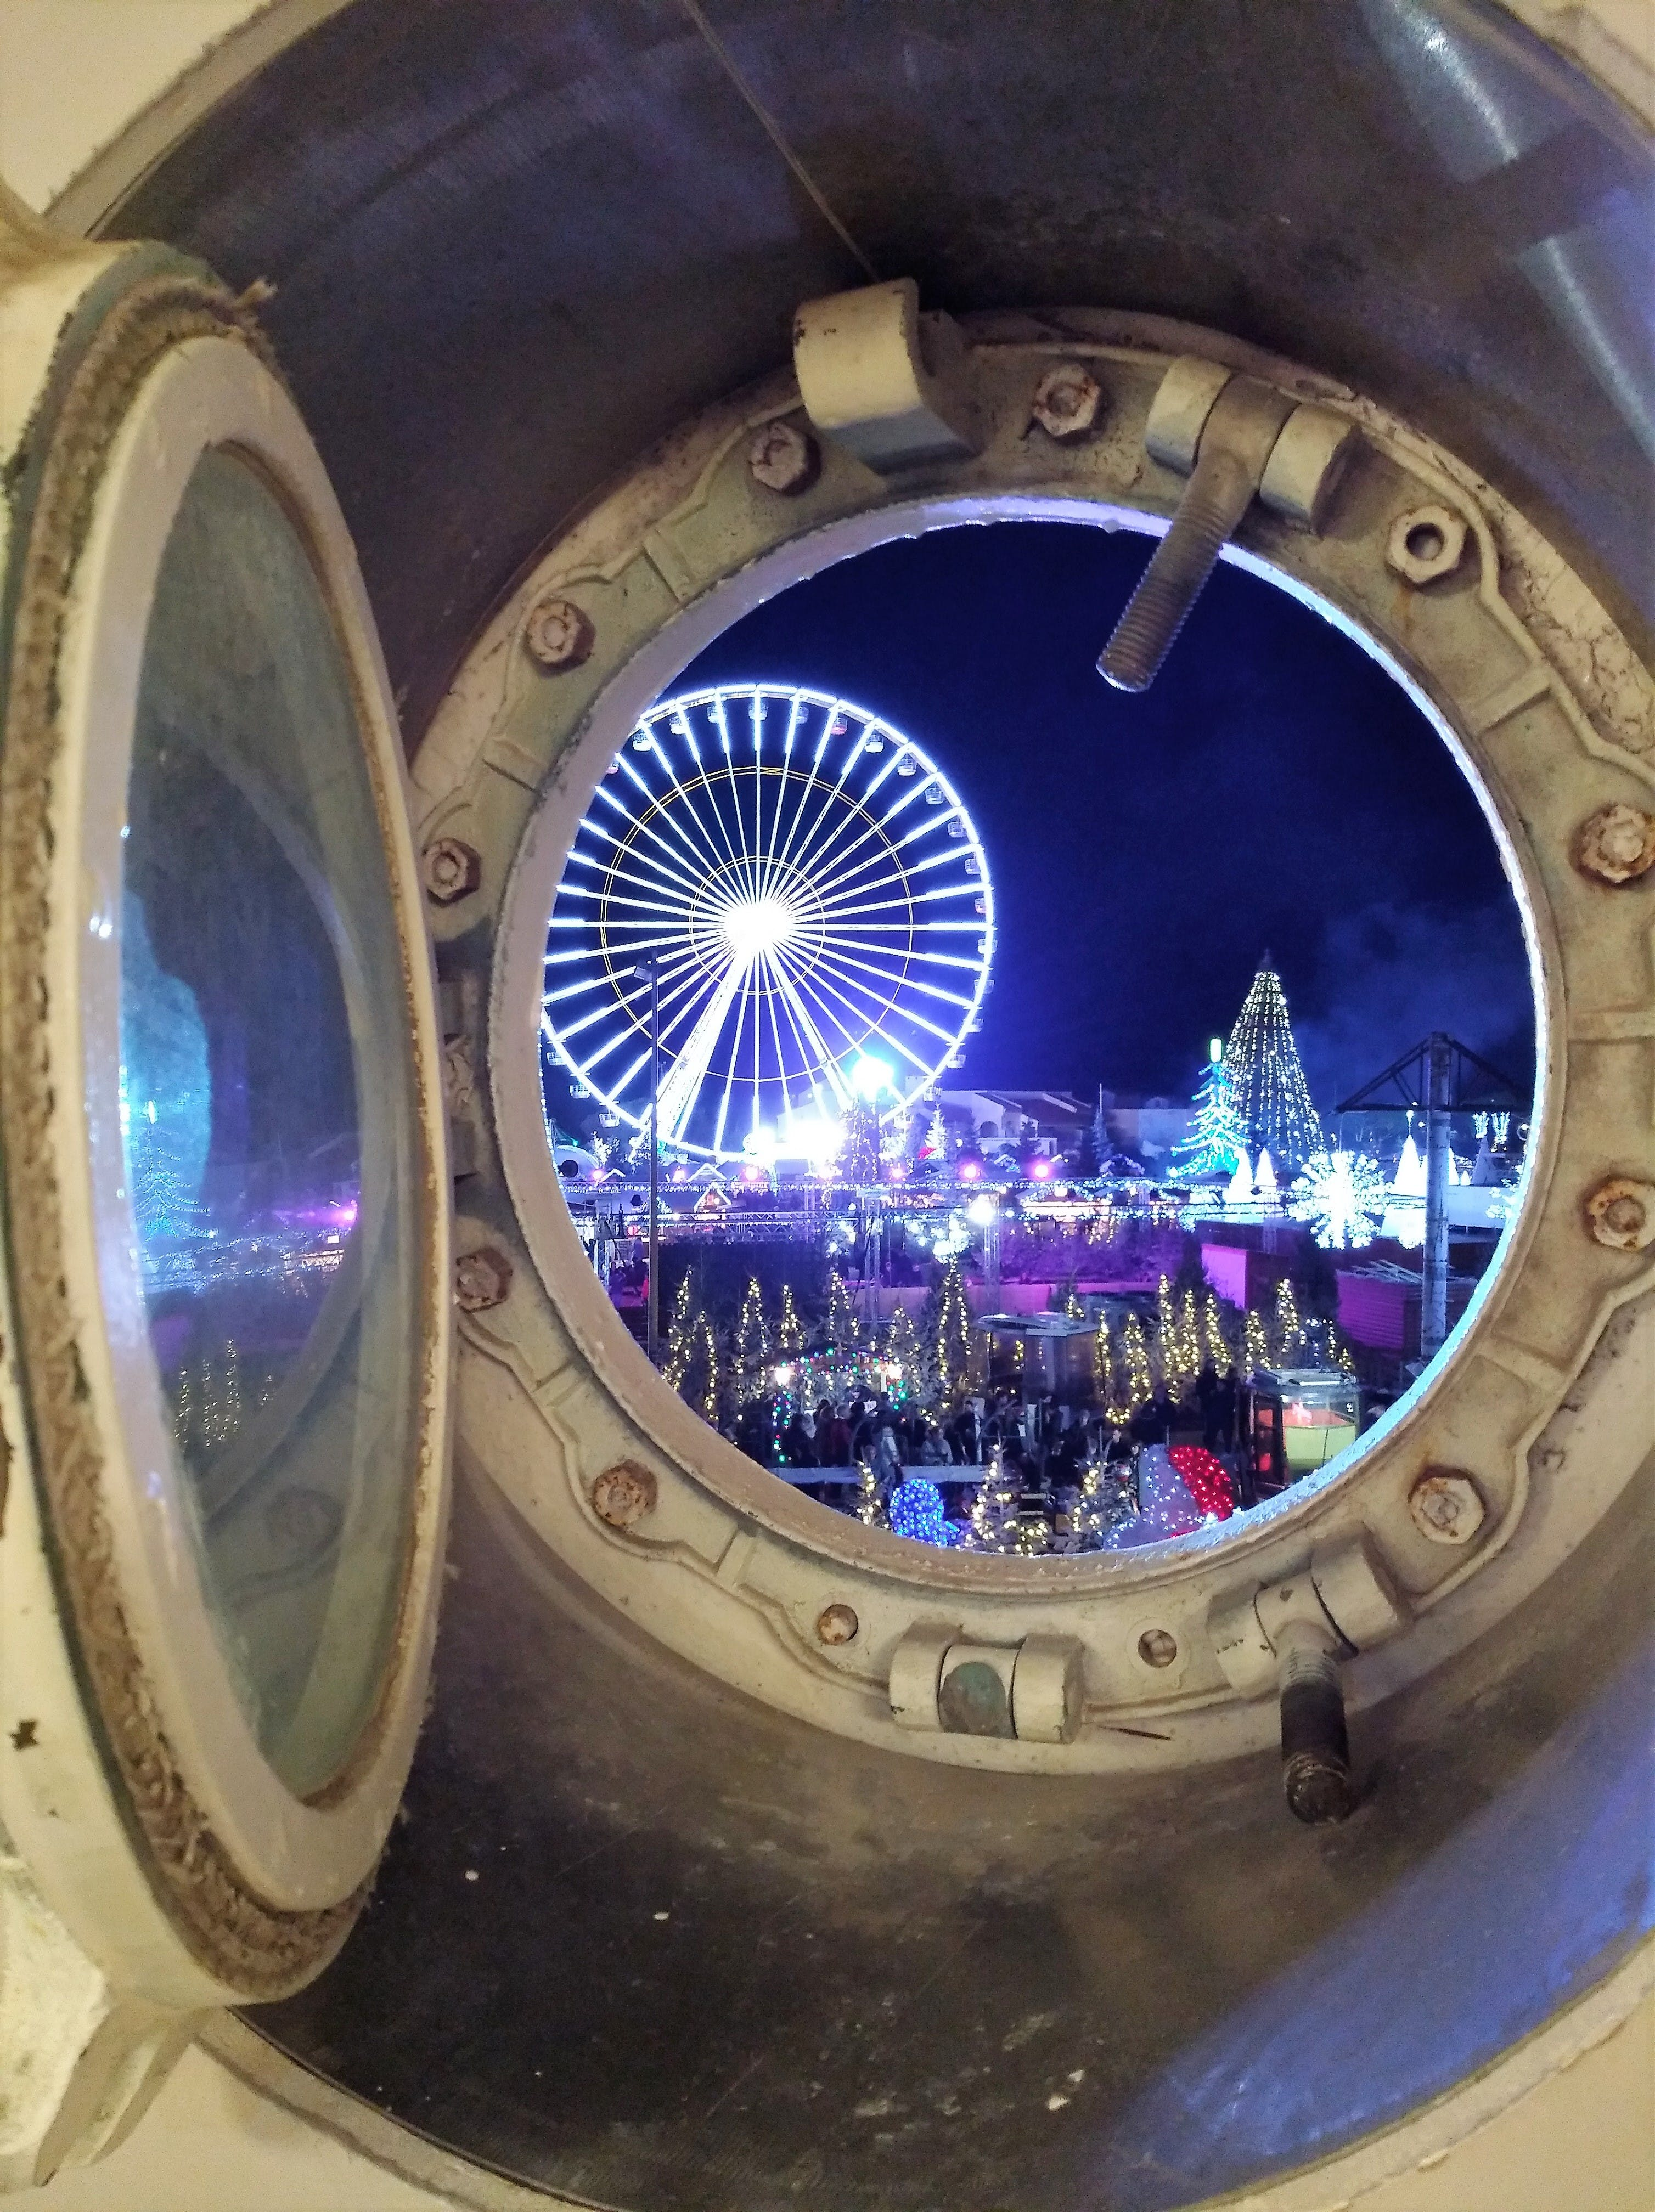 Free stock photo of Celebrations from a boat's porthole perspective